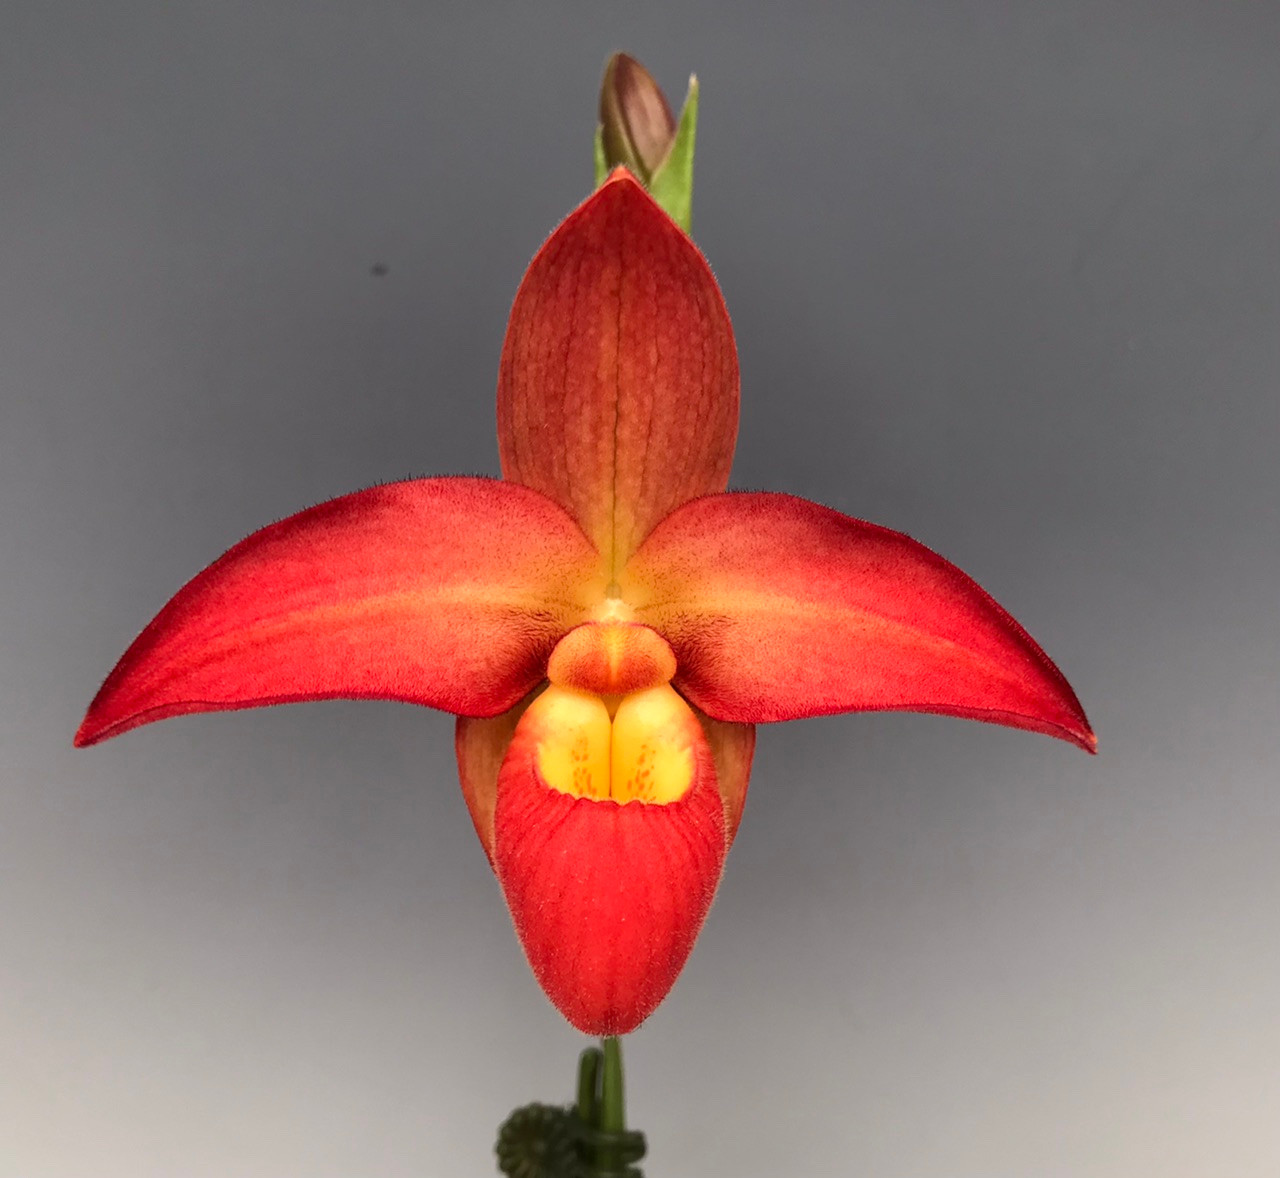 Phrag. Millbrook (Nicholle Tower x besseae) and (besseae 'Raging Red' x Nichole Tower 'Tower of Red')